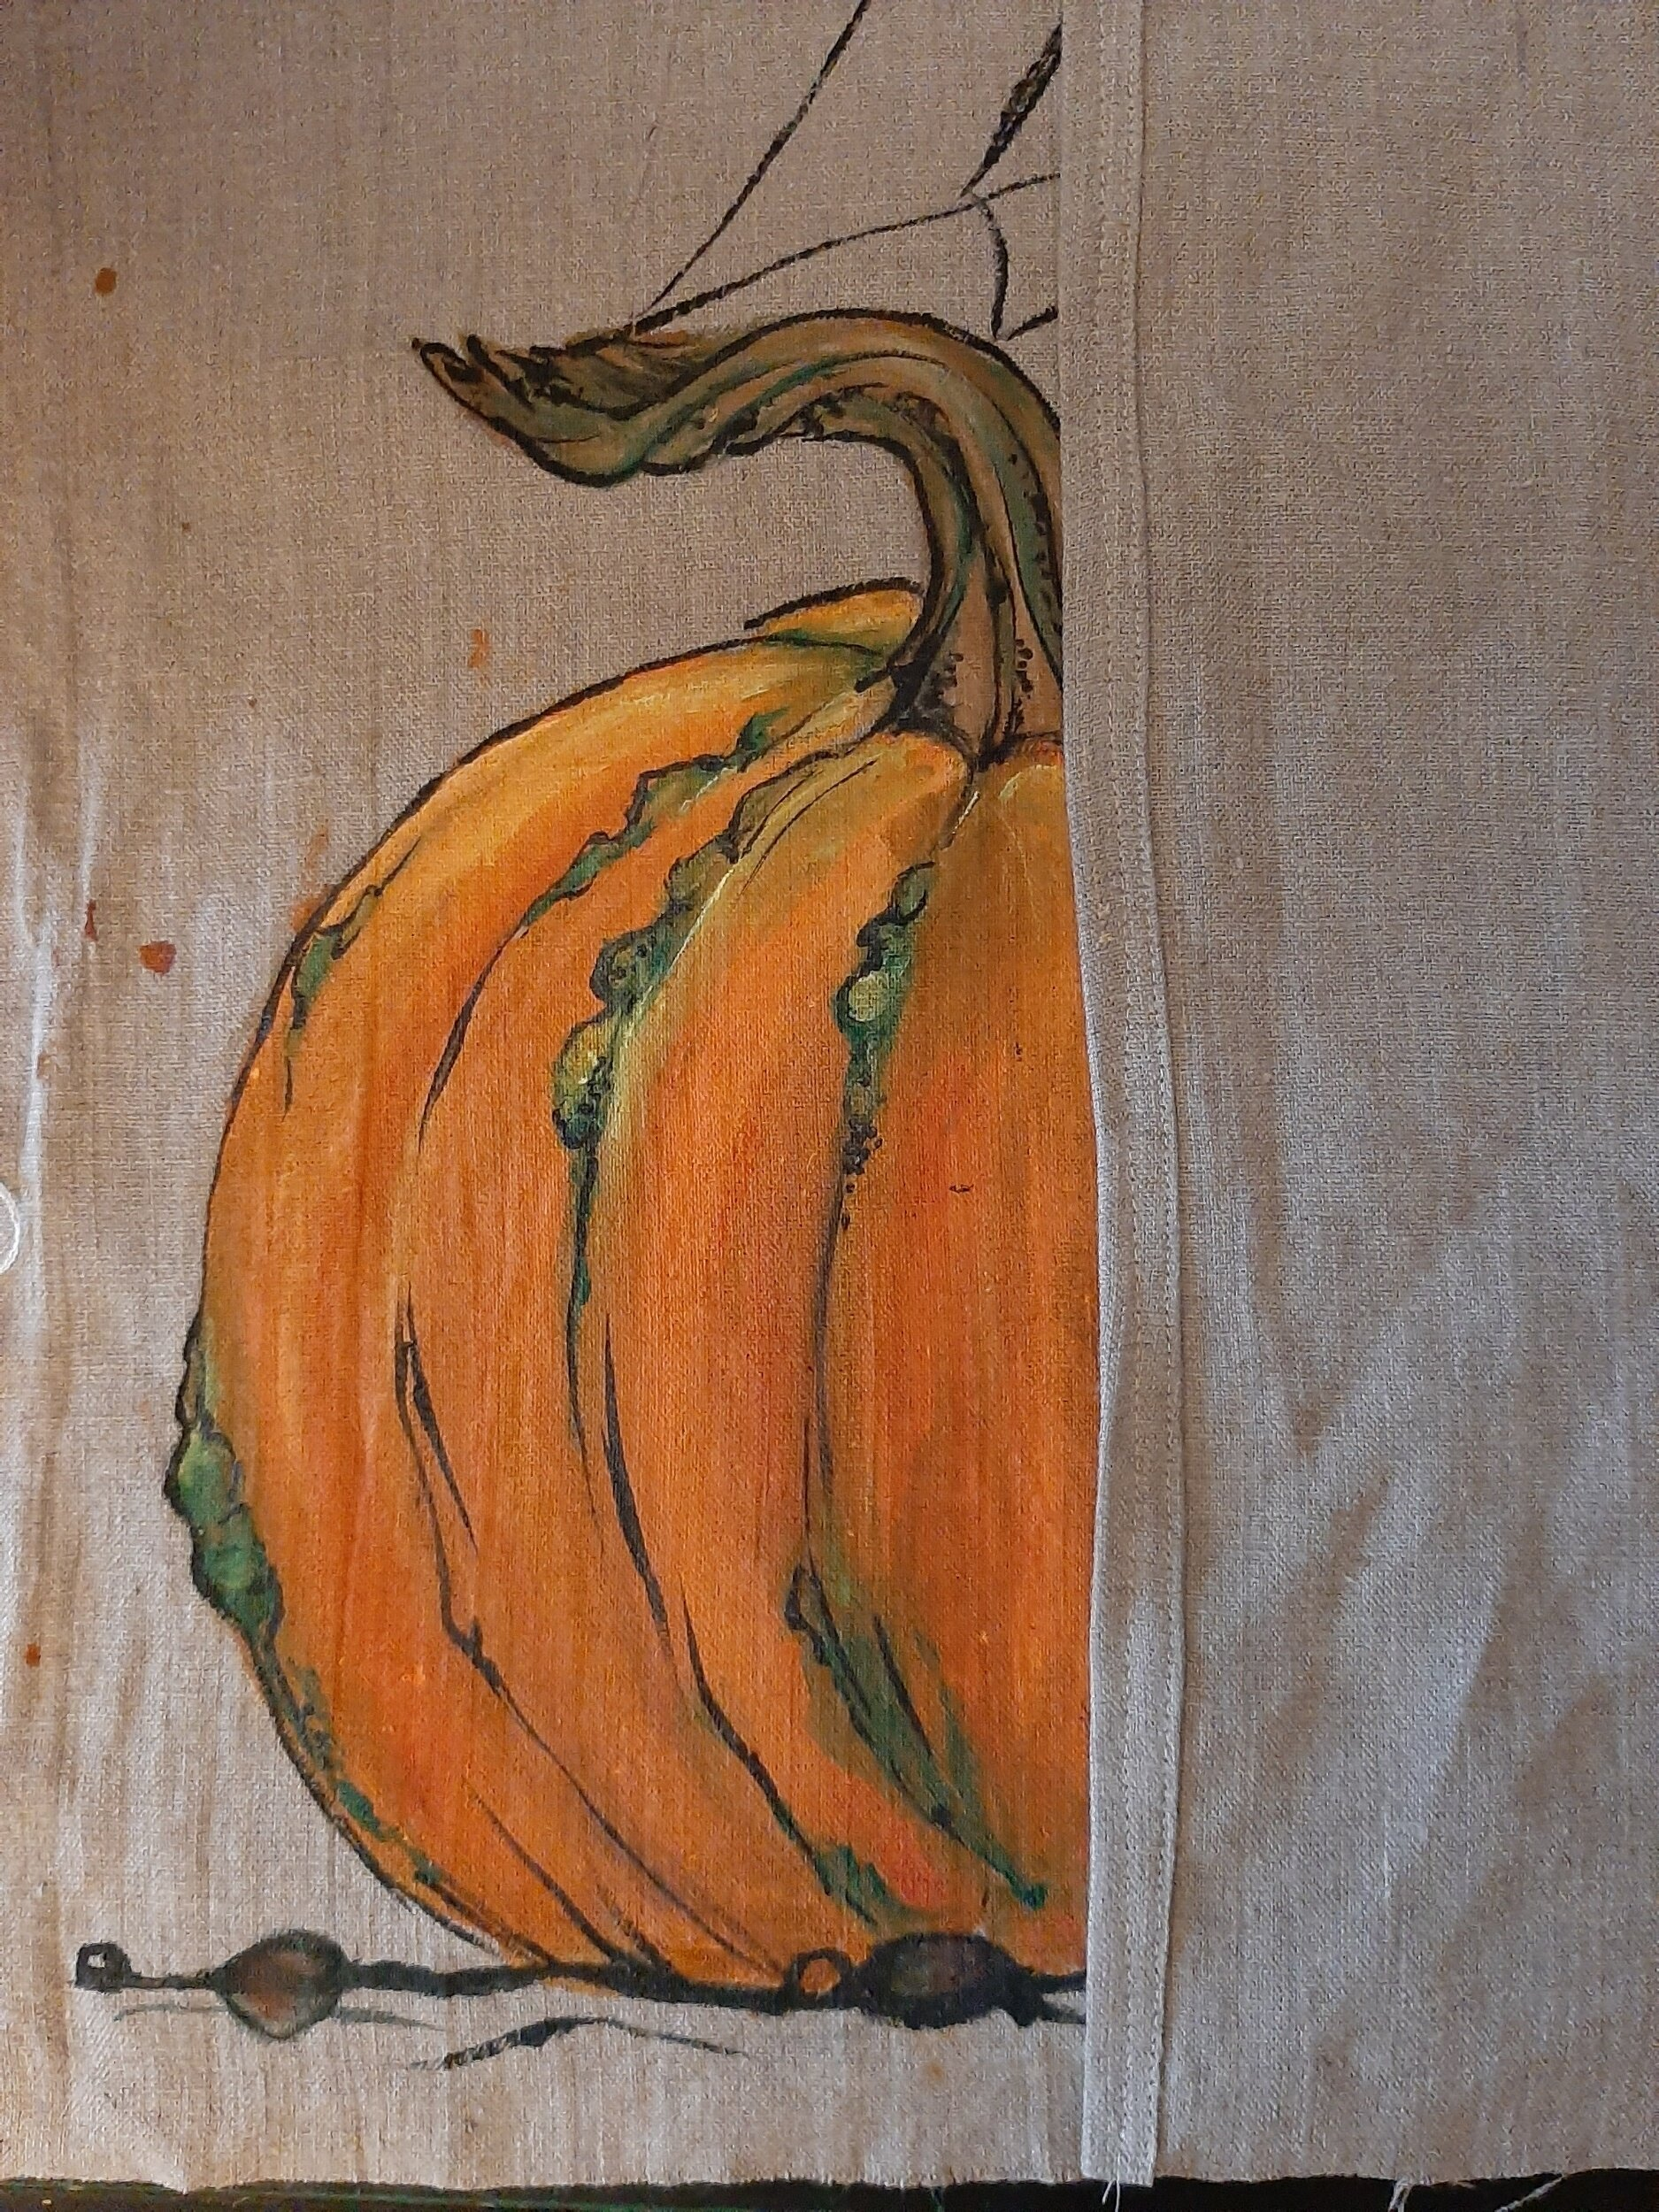 Pumpkin facing up, hem in the middle fold up.